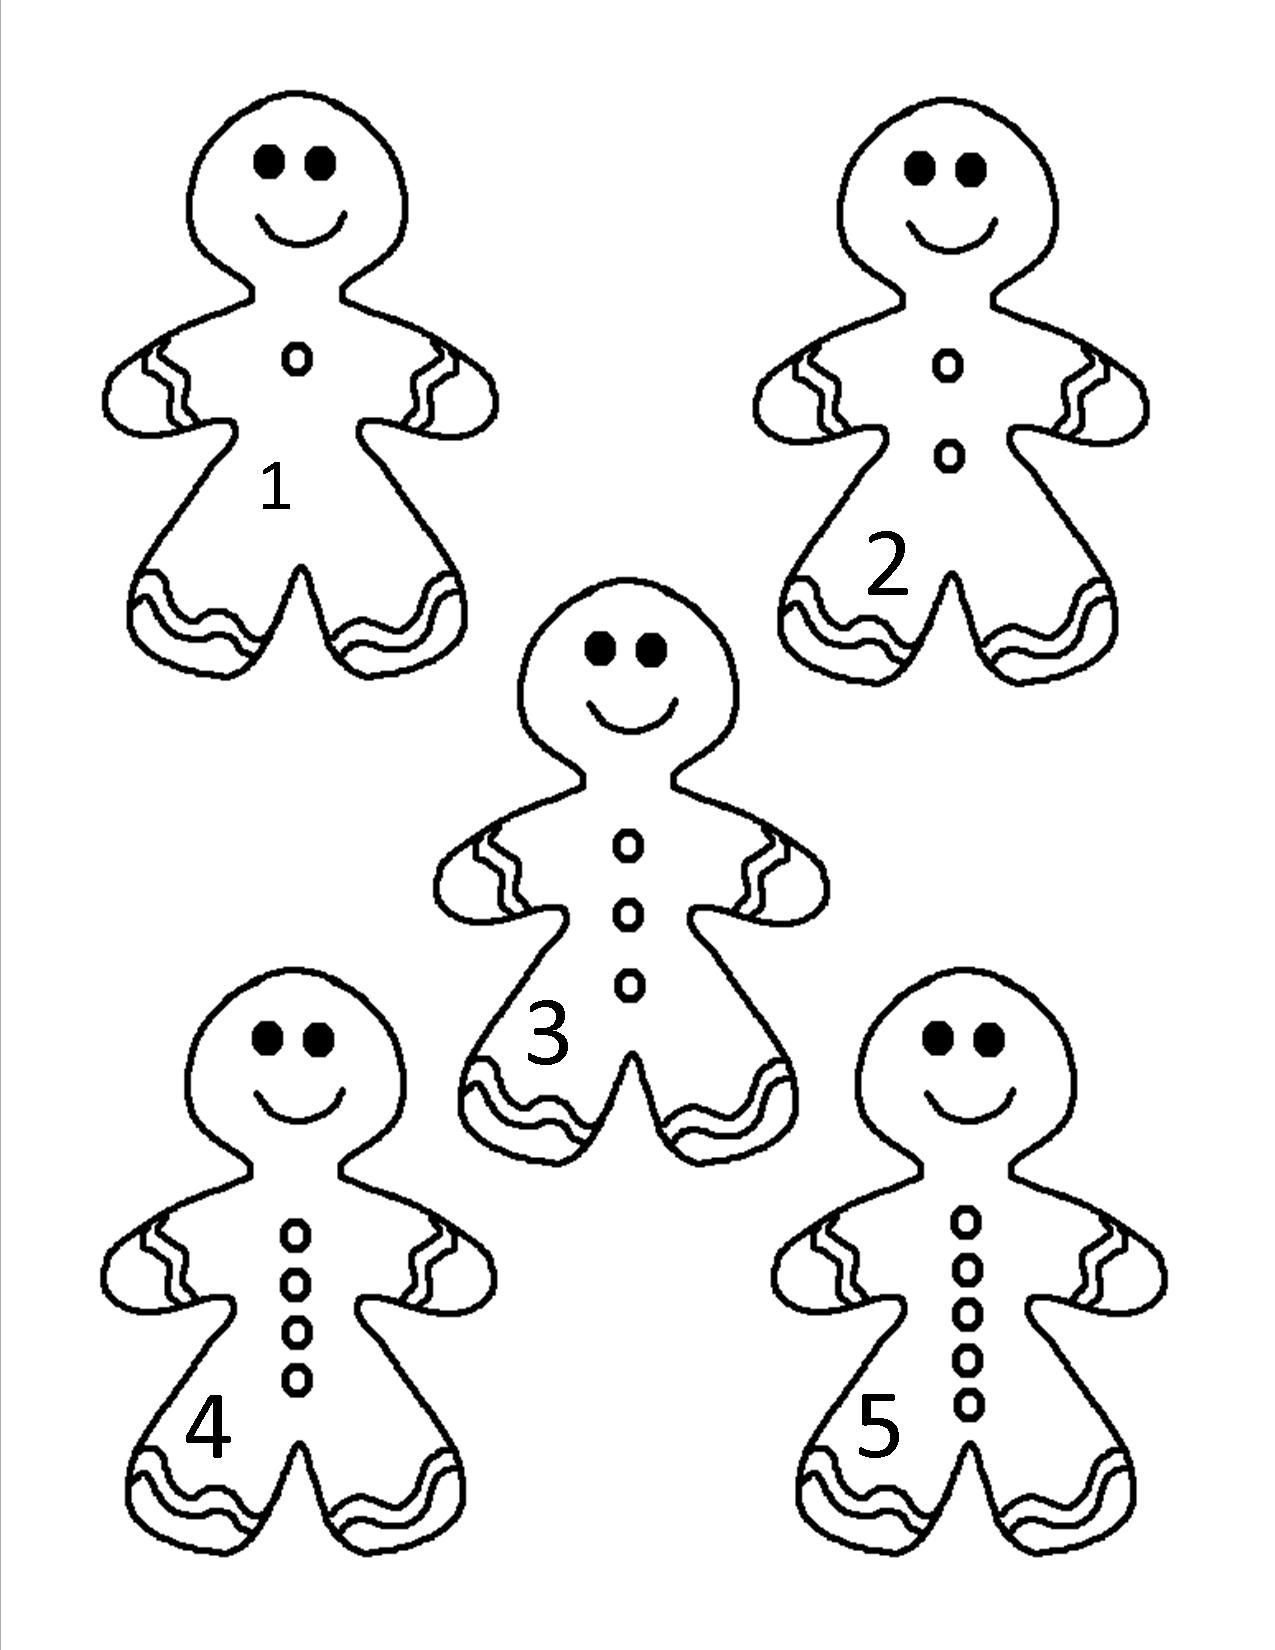 Gingerbread Man Counting Set 1 5 People Coloring Pages Baby Coloring Pages Coloring Pages